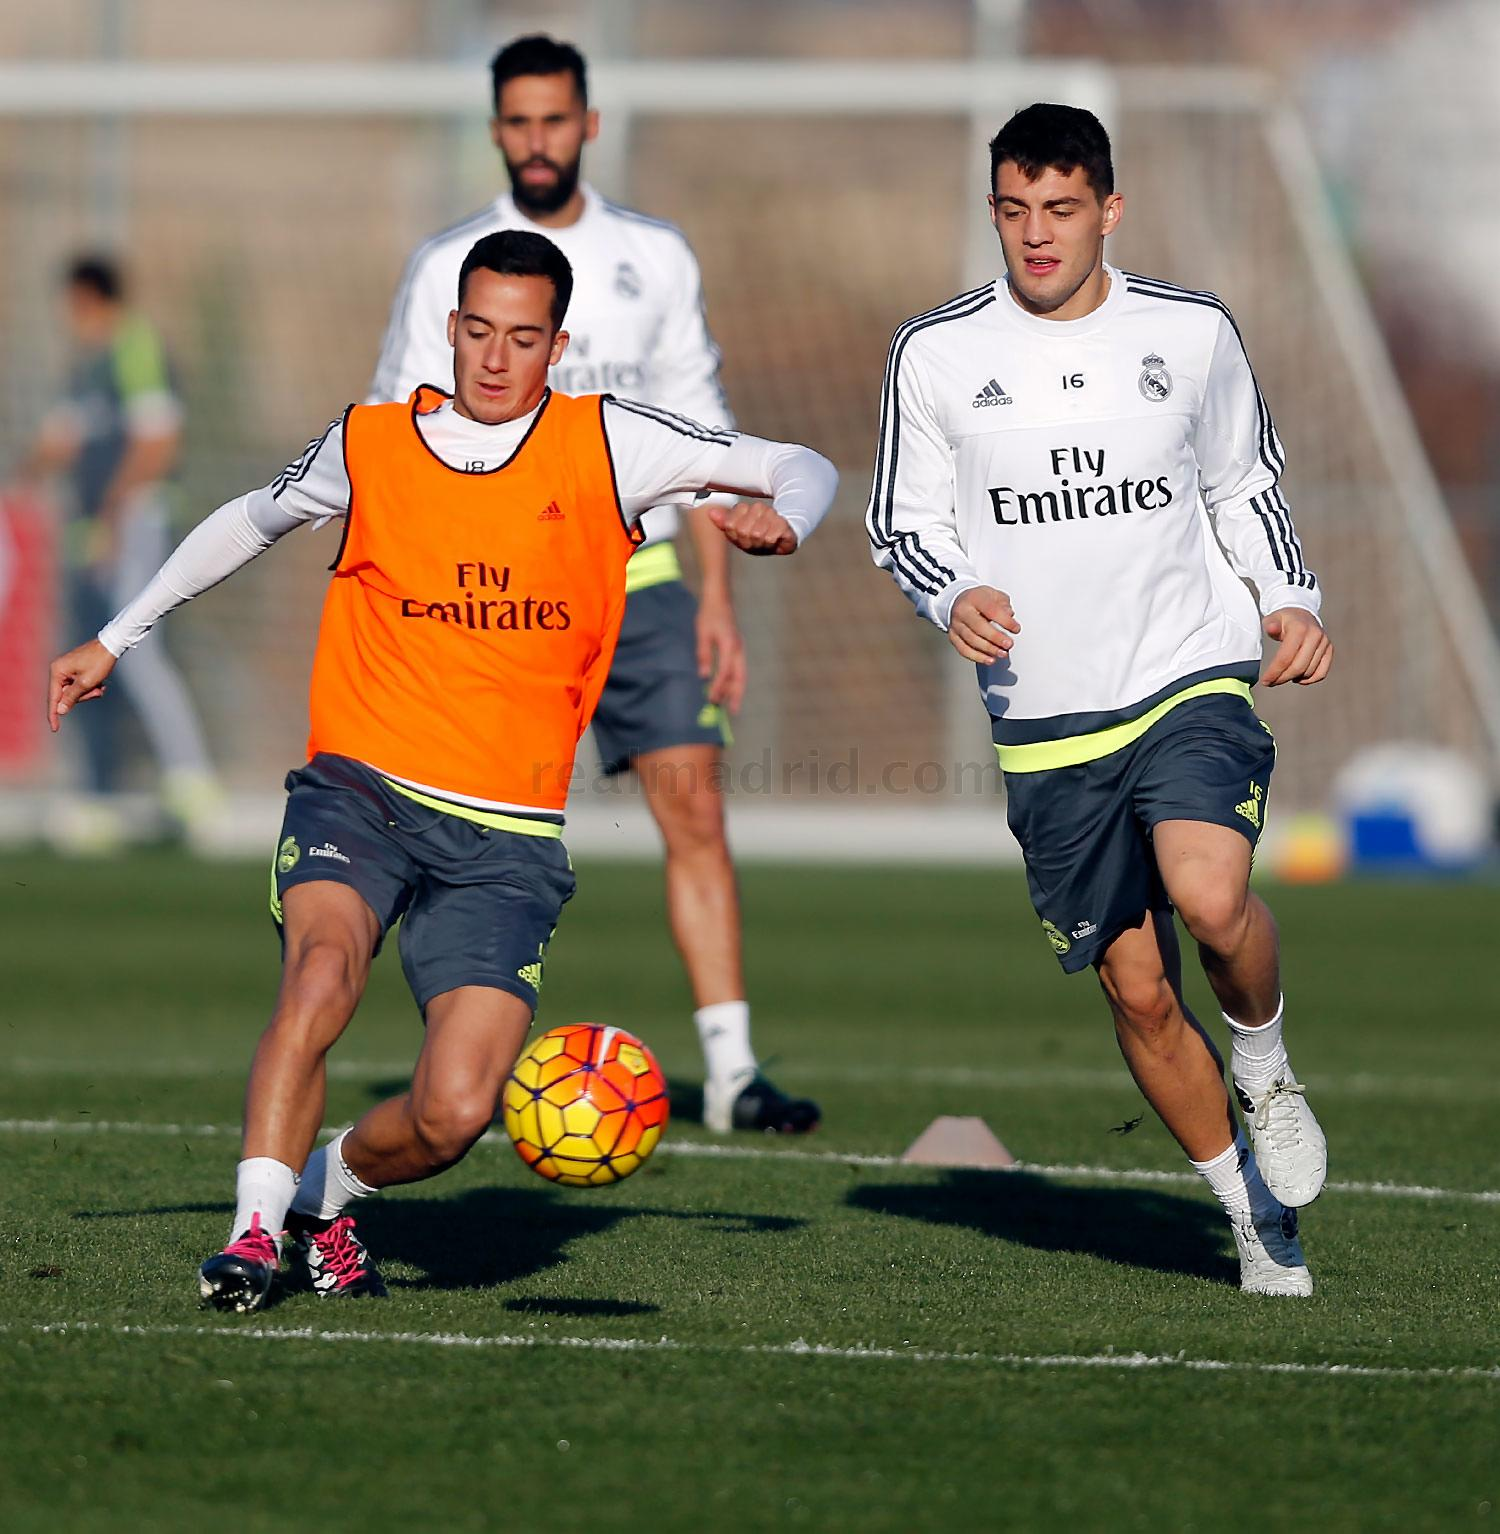 Real Madrid - Entrenamiento del Real Madrid - 11-12-2015